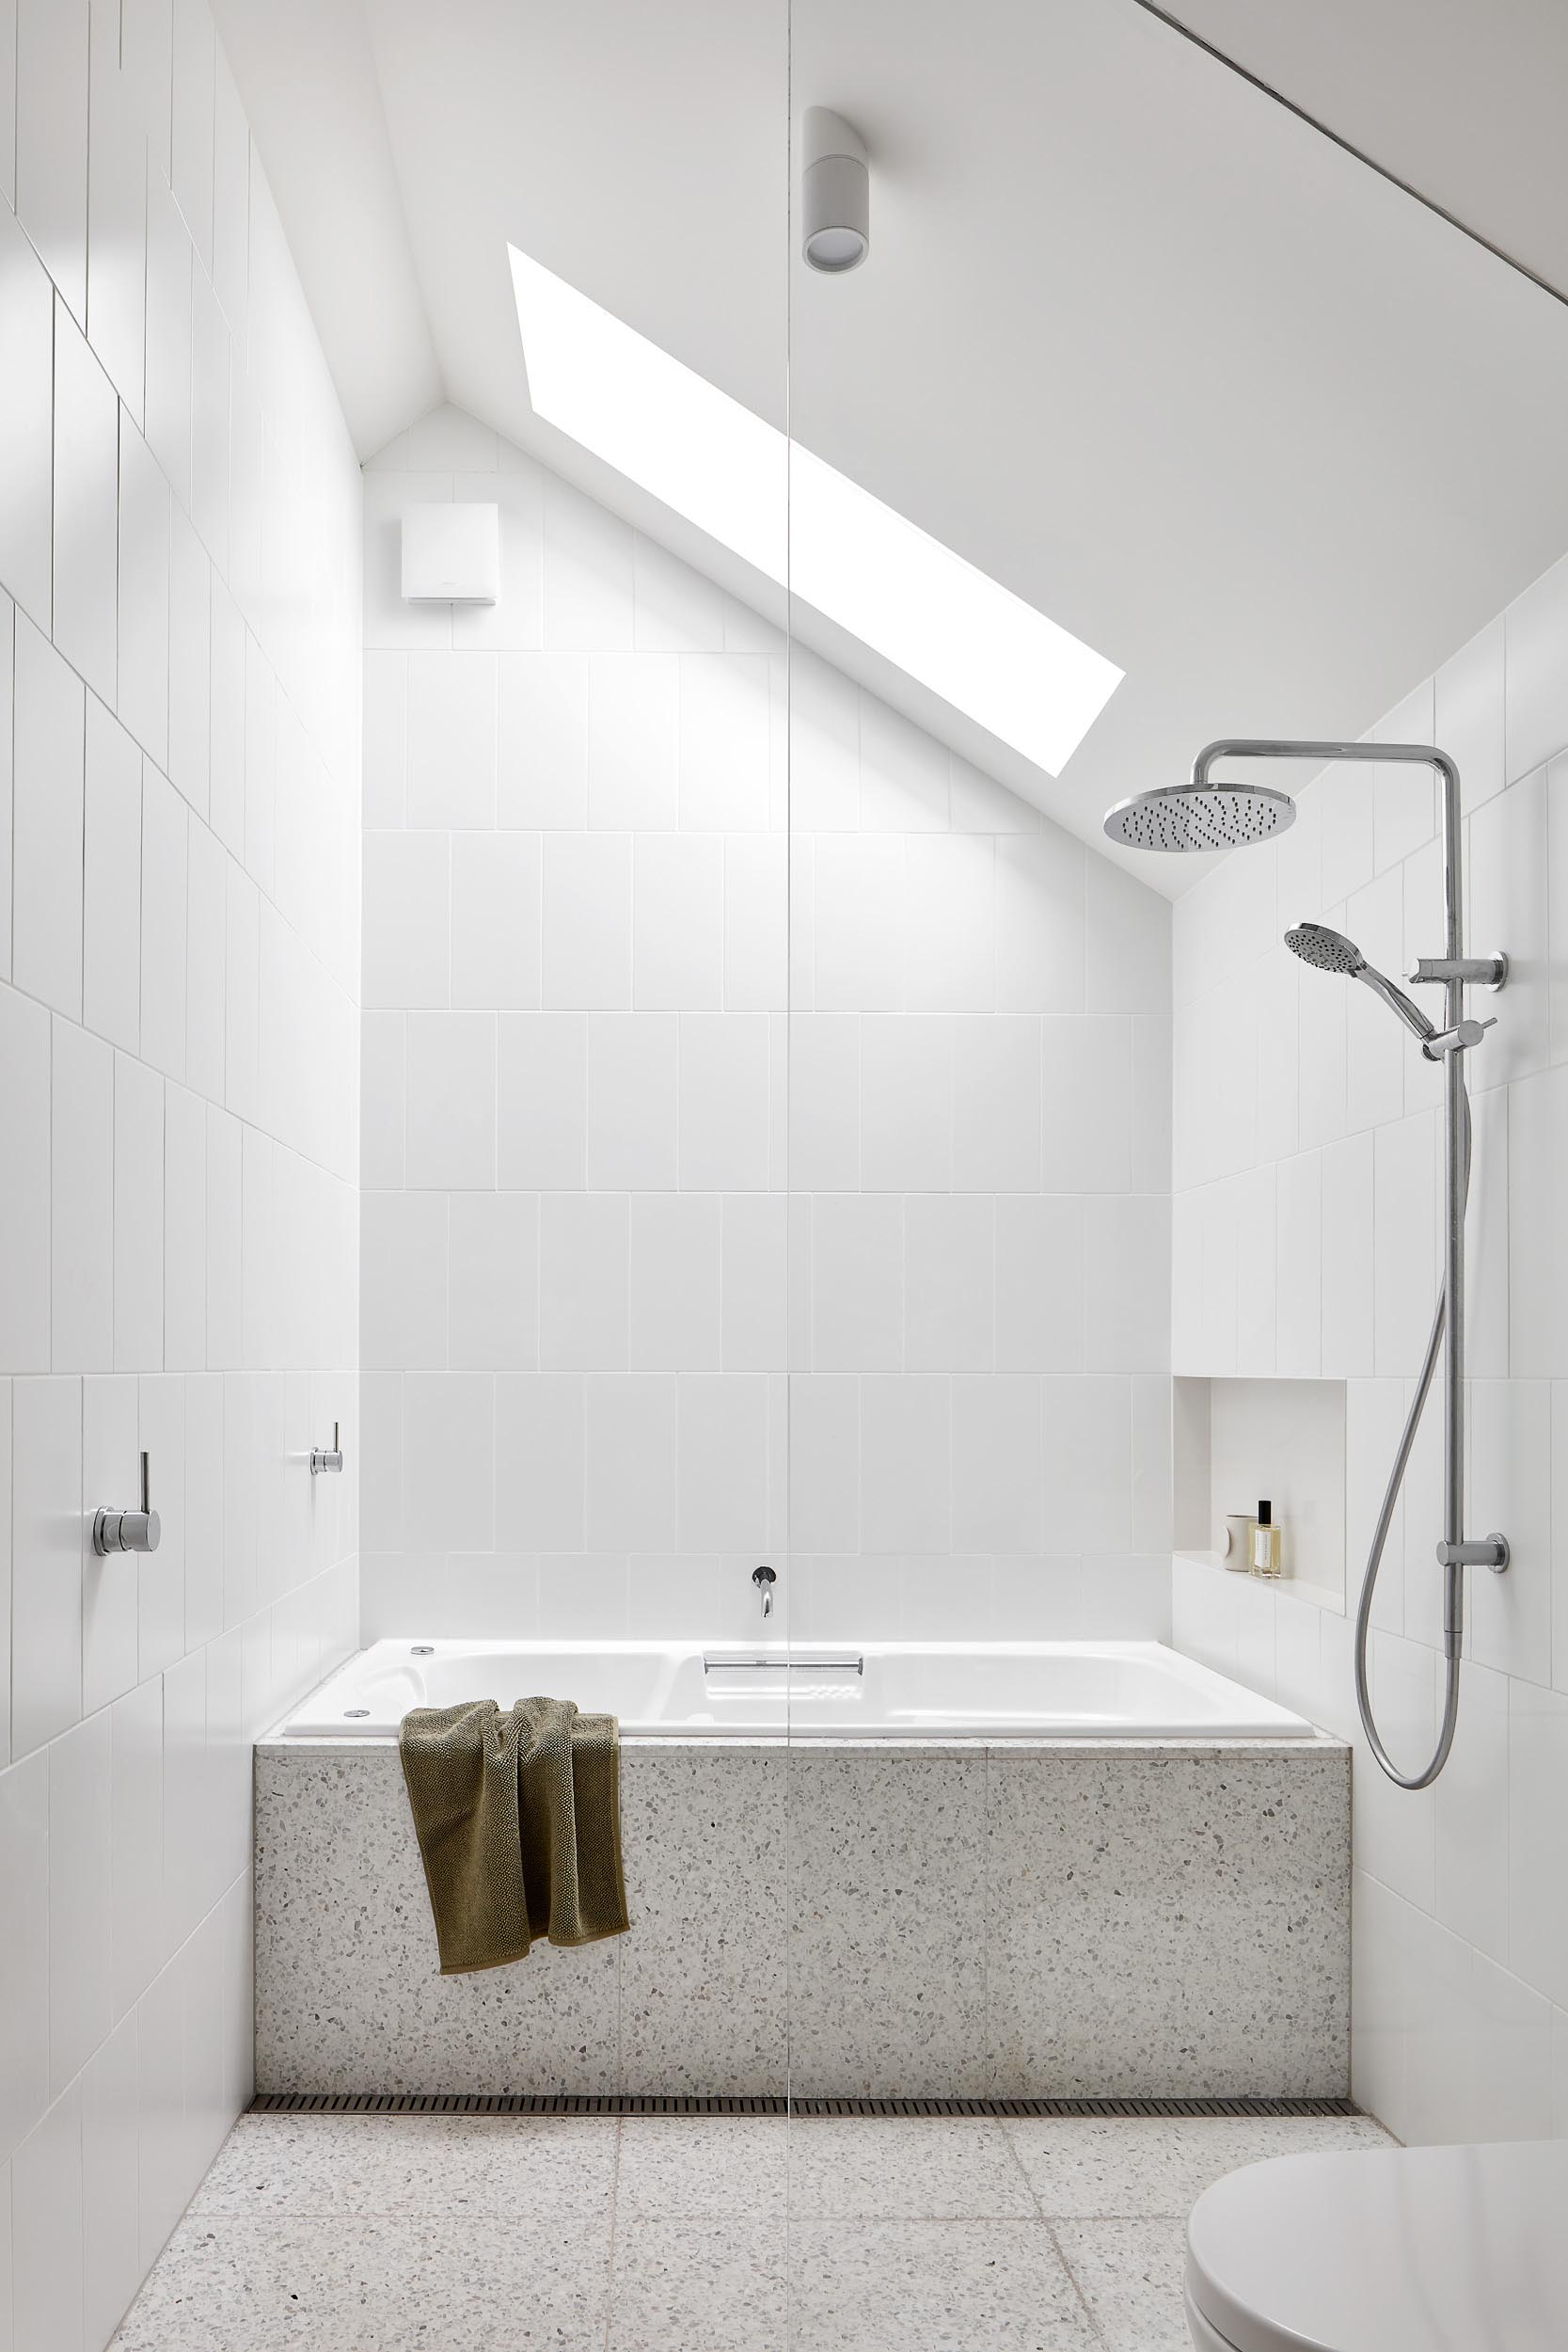 The terrazzo flooring in this bathroom travels through the shower and wraps onto the surround of the built-in bathtub.